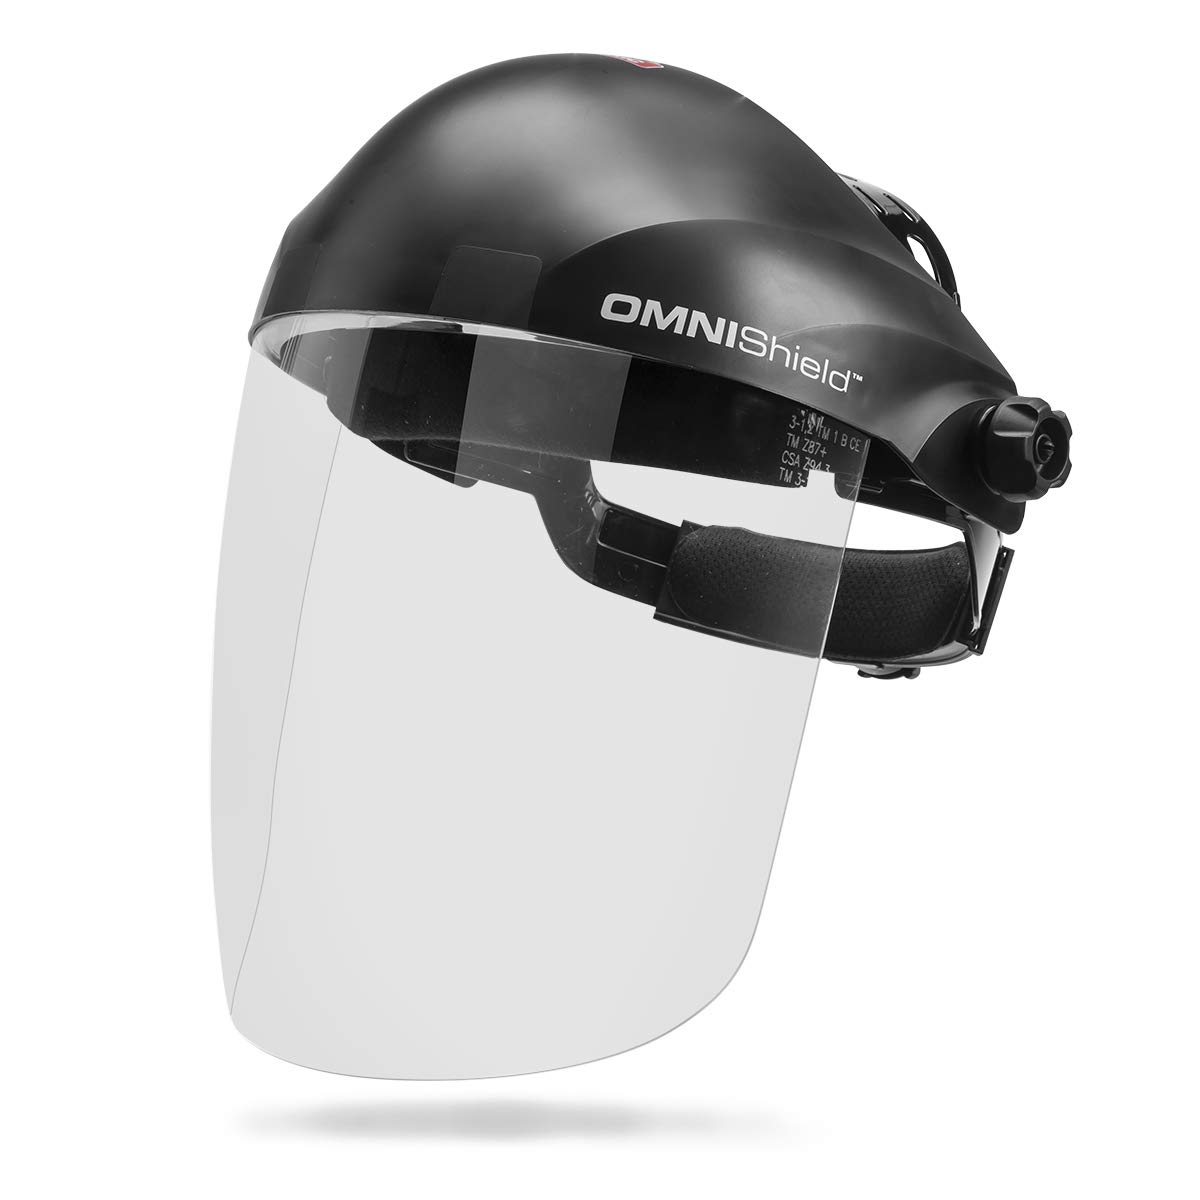 Lincoln Electric K3750-1 OMNIShield Professional Face Shield | High Density Clear Lens | Premium Headgear